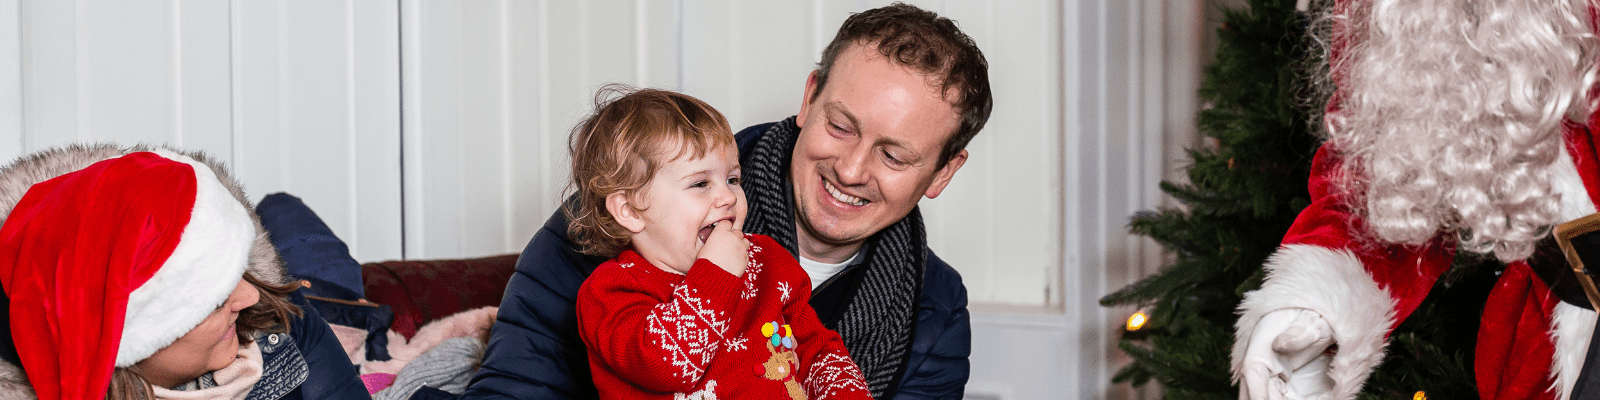 https://www.airfield.ie/wp-content/uploads/2020/09/Family-Experience-with-Santa-at-Airfield-Estate-min.png